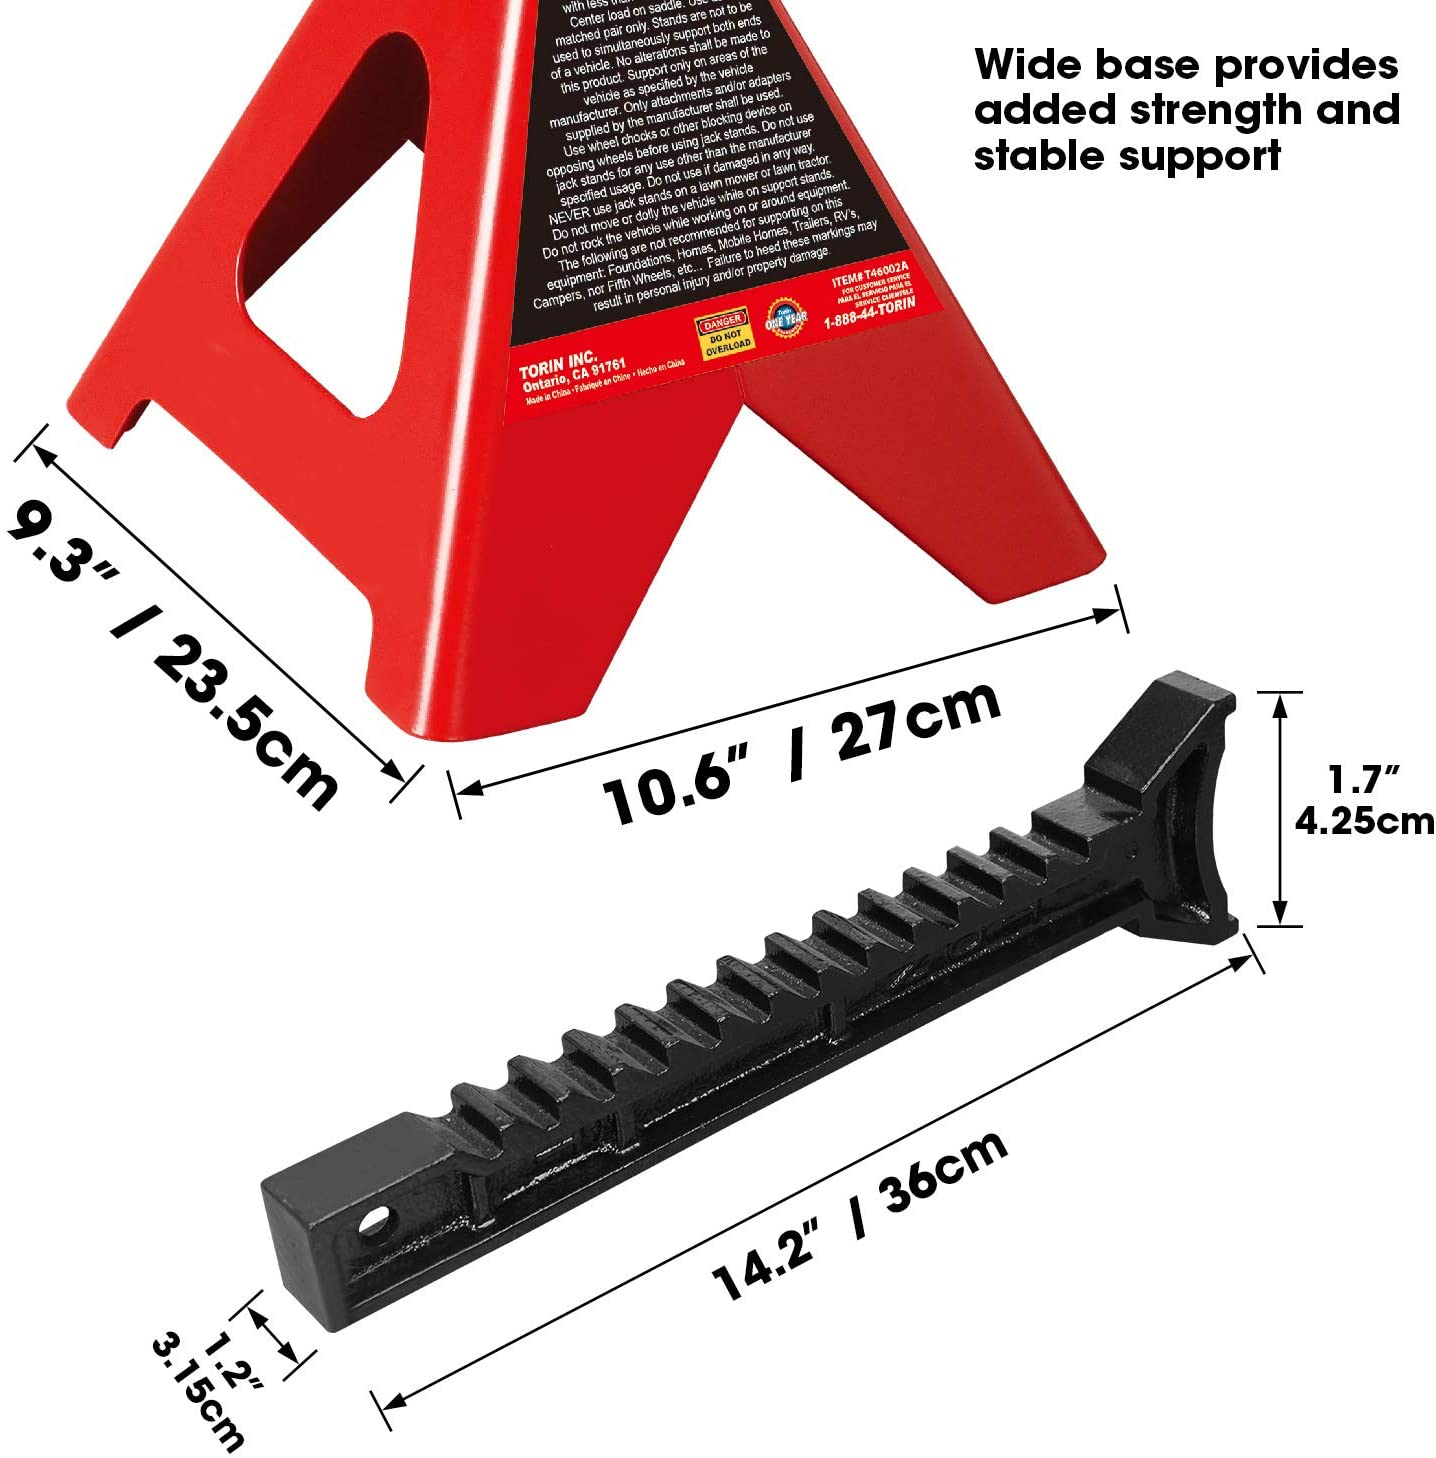 Big Red T43002A Torin Jack Stand specs